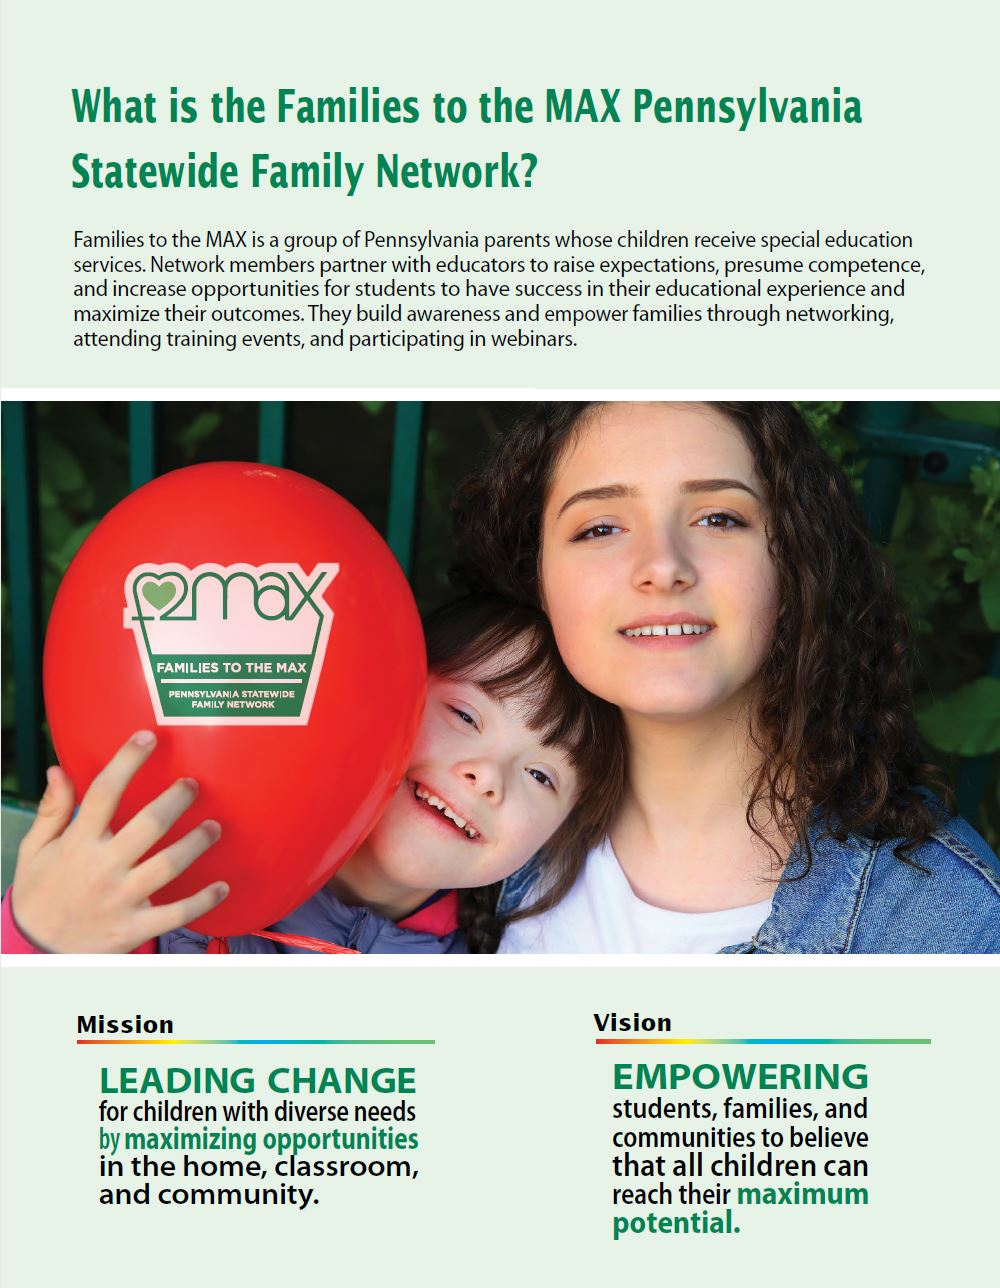 What is the Families to the MAX Pennsylvania Statewide Network?